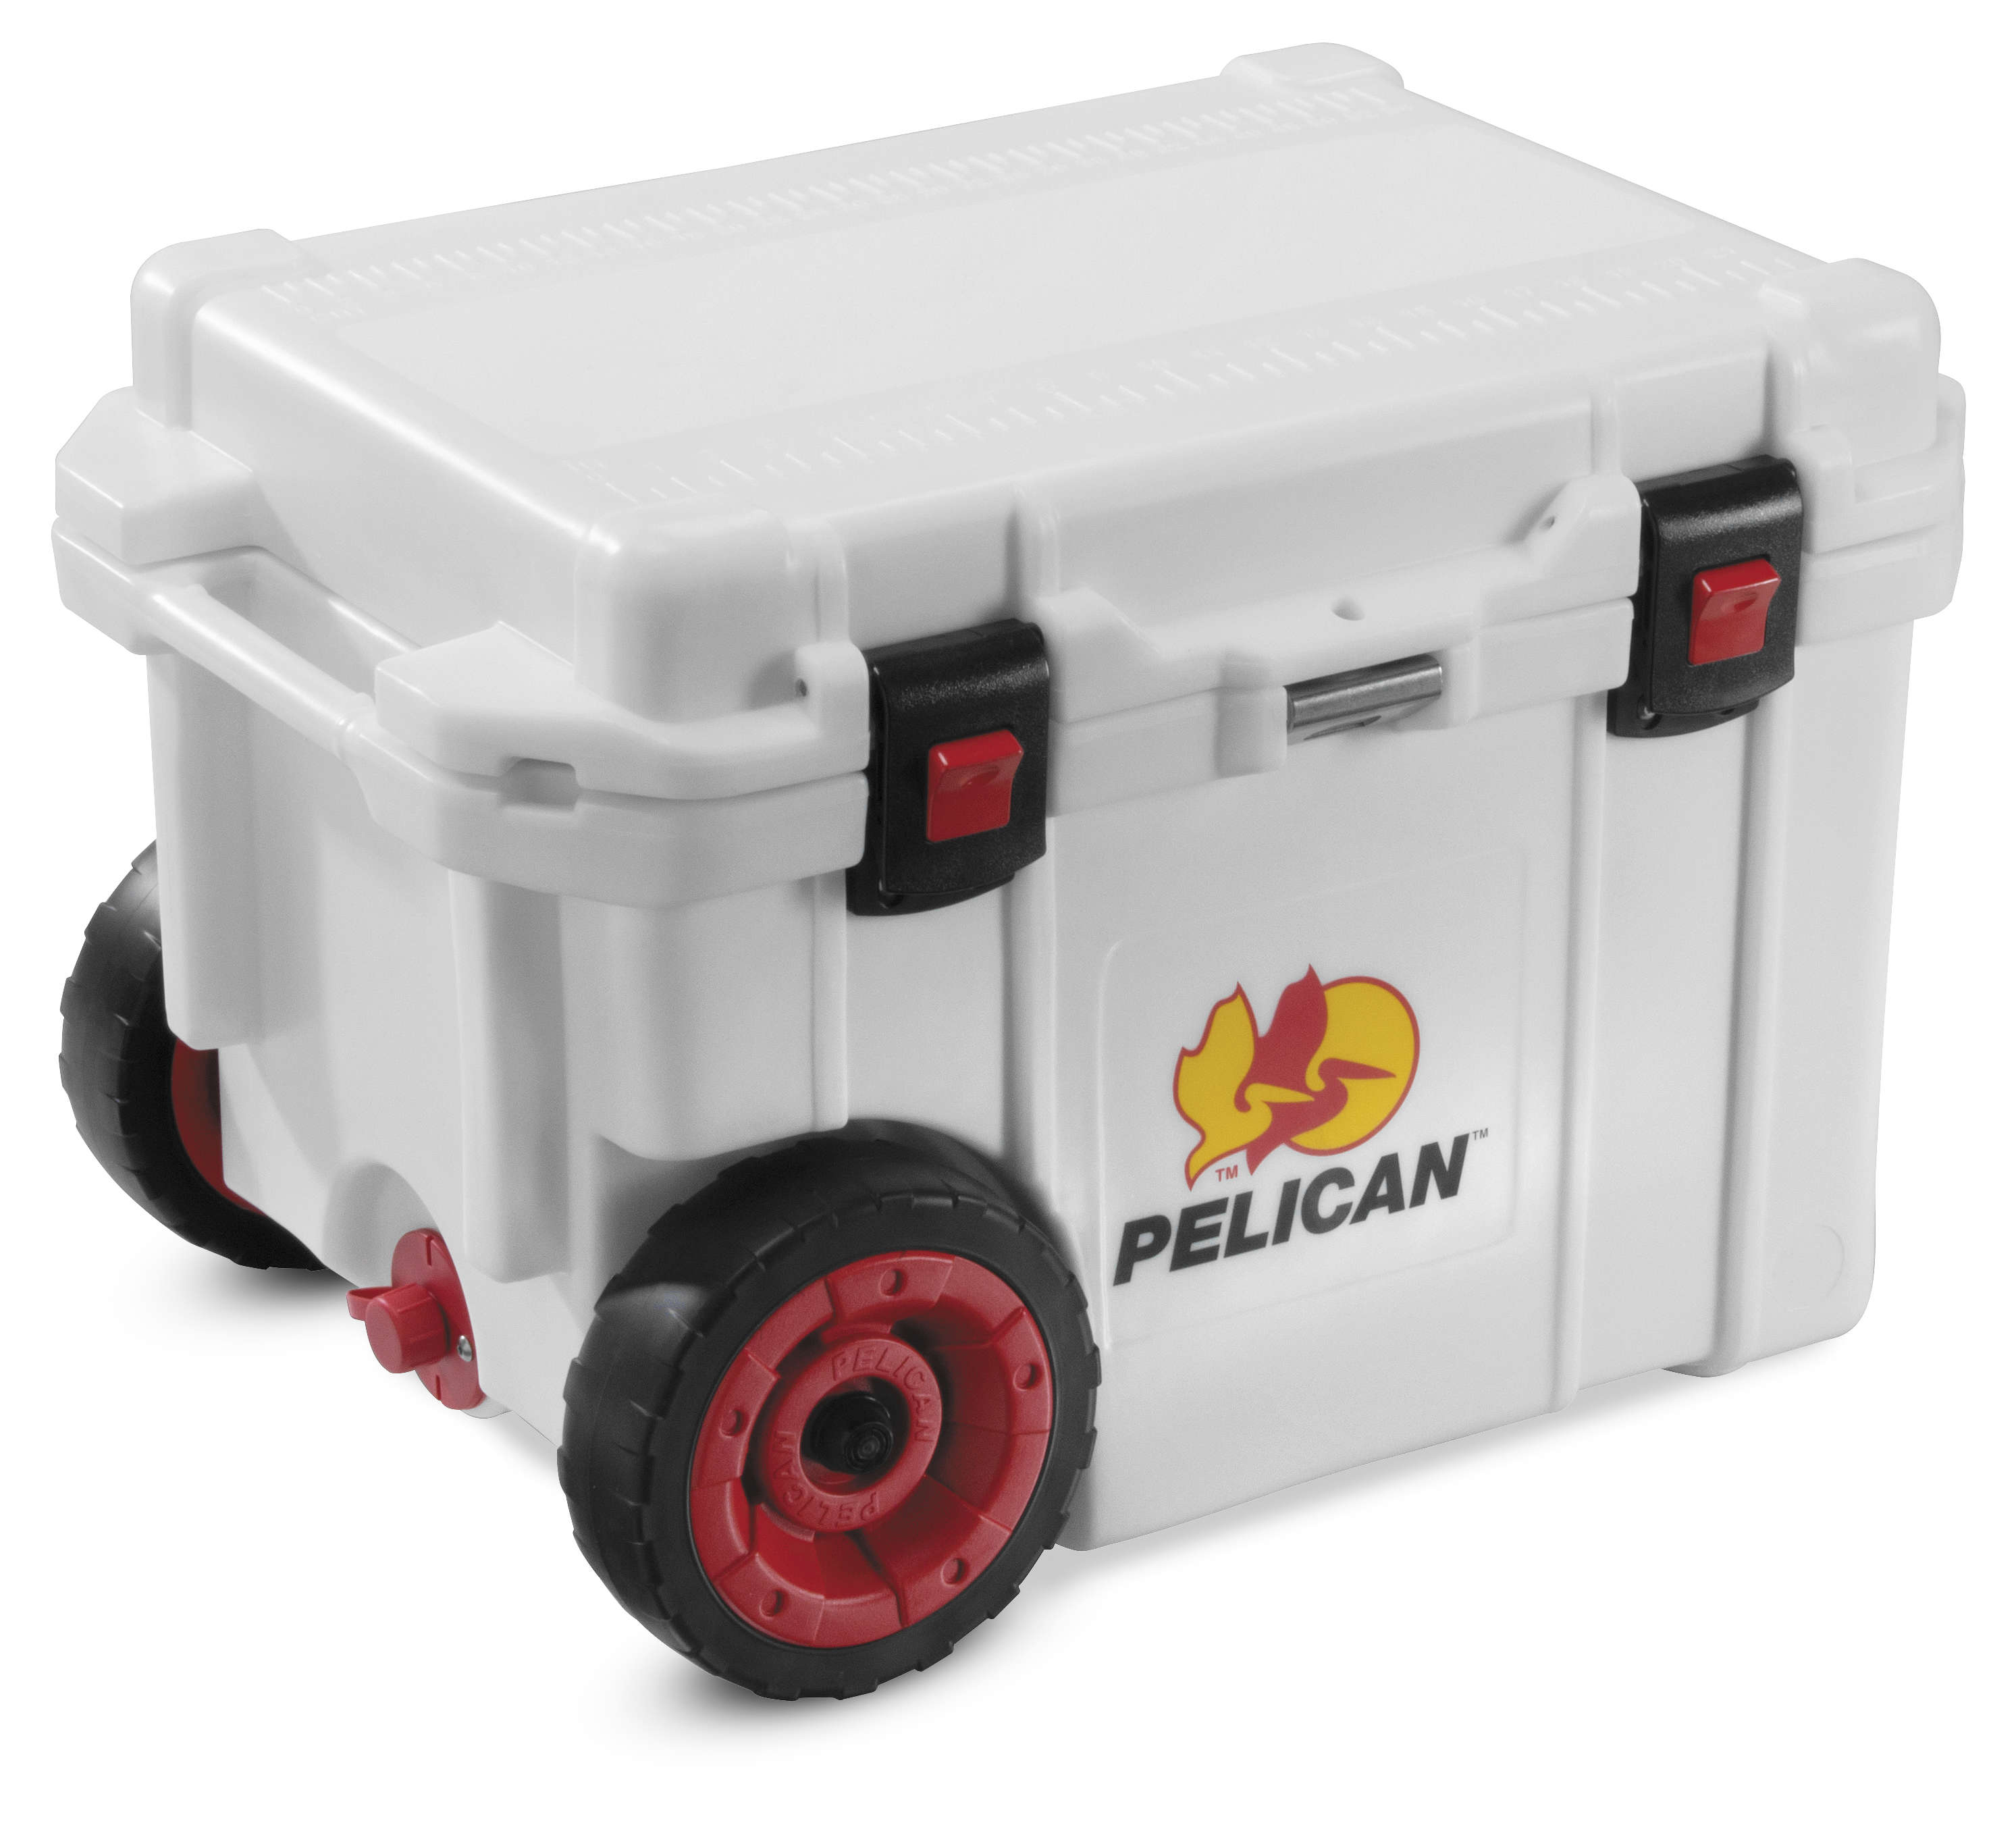 PELICAN PRODUCTS, INC Wheeled Elite Coolers